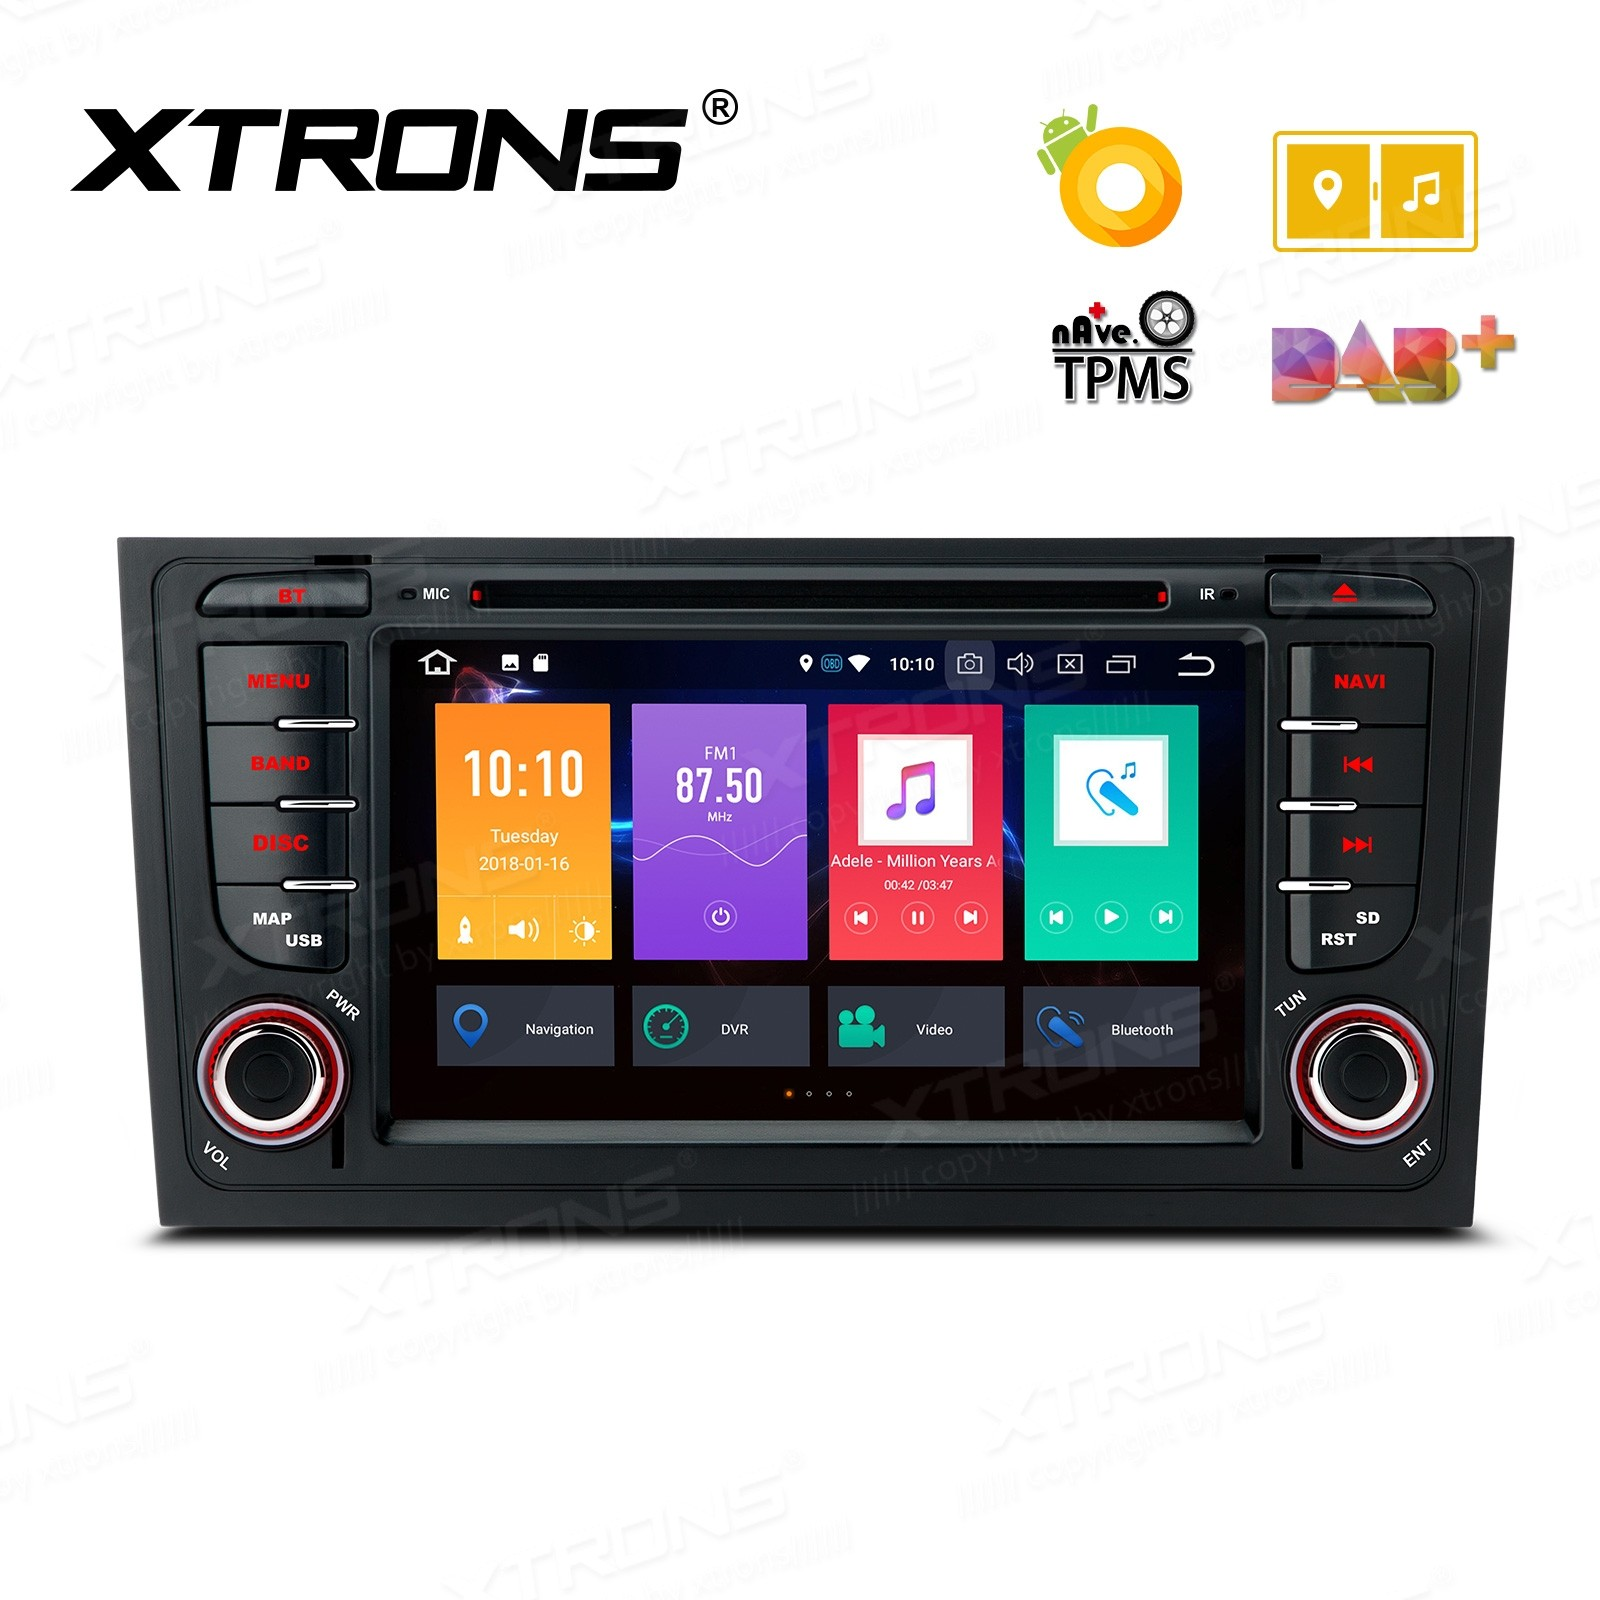 Android 8.0 Octa-Core 32GB ROM + 4G RAM Multimedia DVD Player with 7'' Display Custom fit for Audi A6 / S6 / RS6